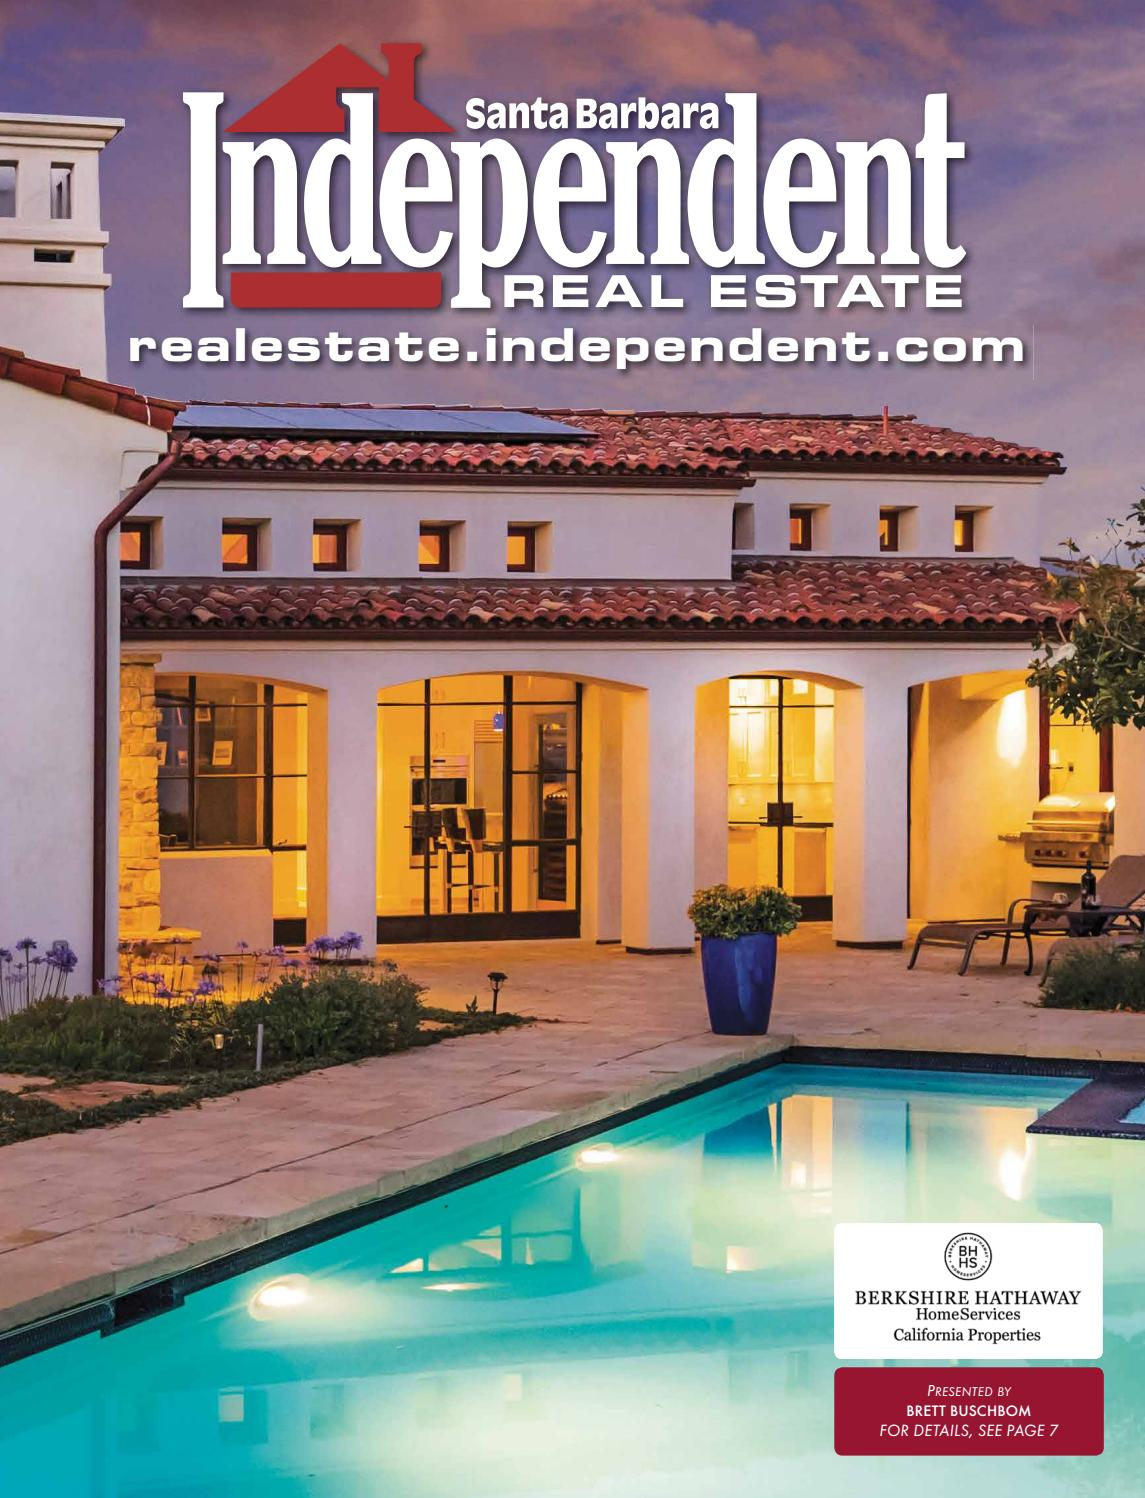 Santa Barbara Independent Real Estate